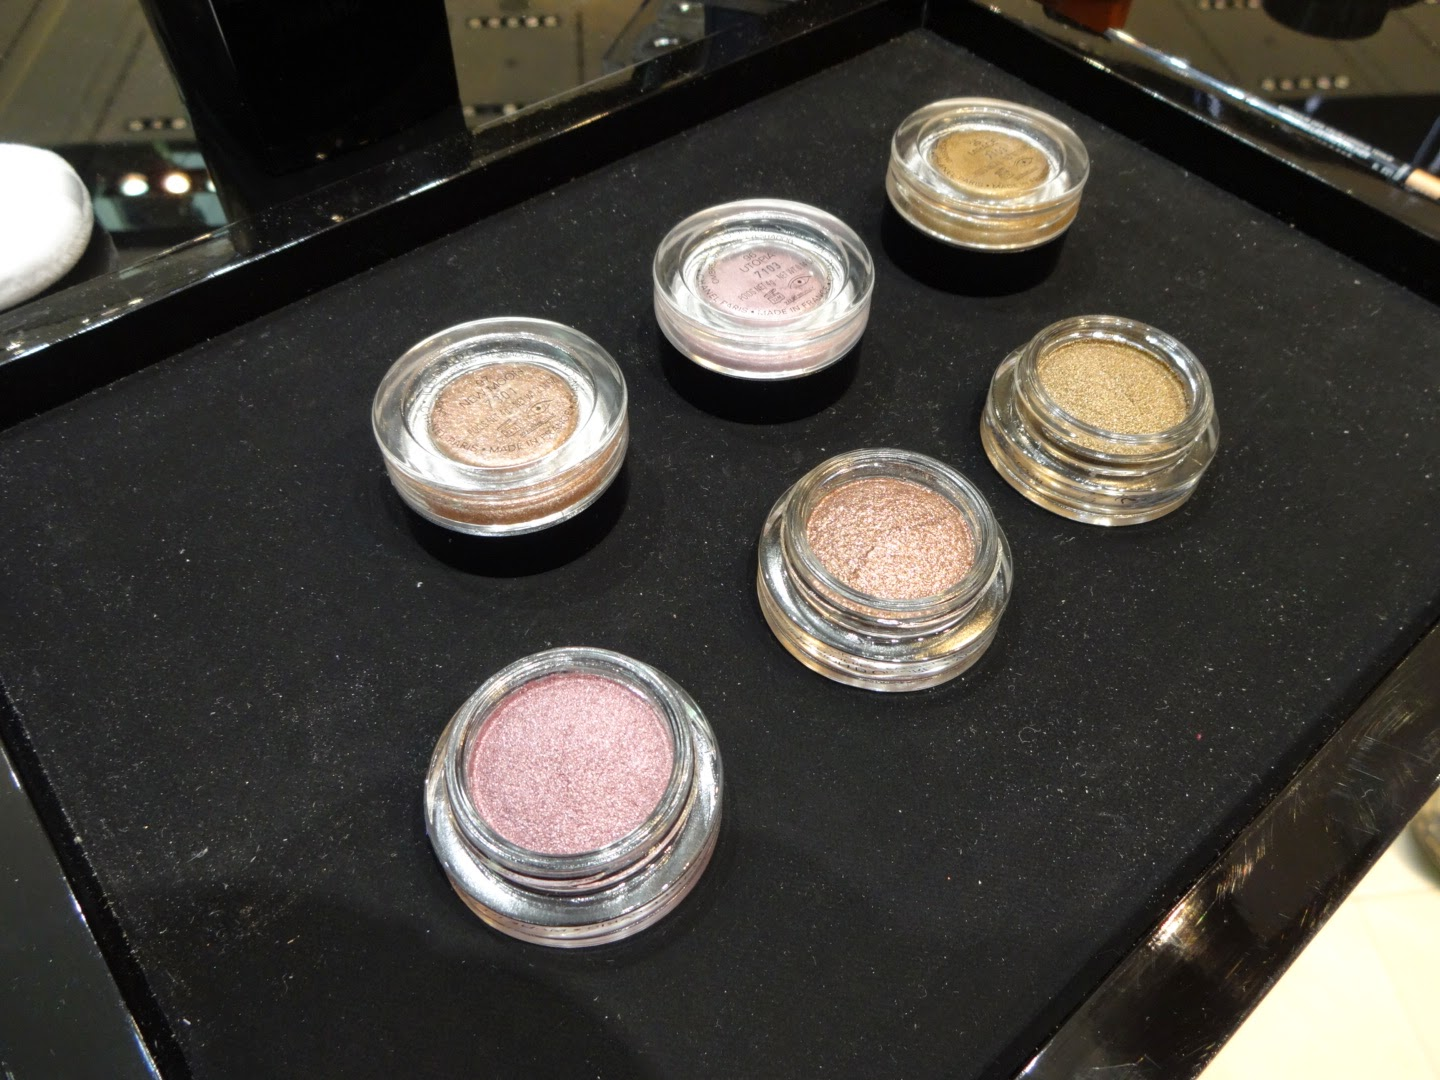 CHANEL make up summer 2014 collection Reflets d'été e Les Beiges